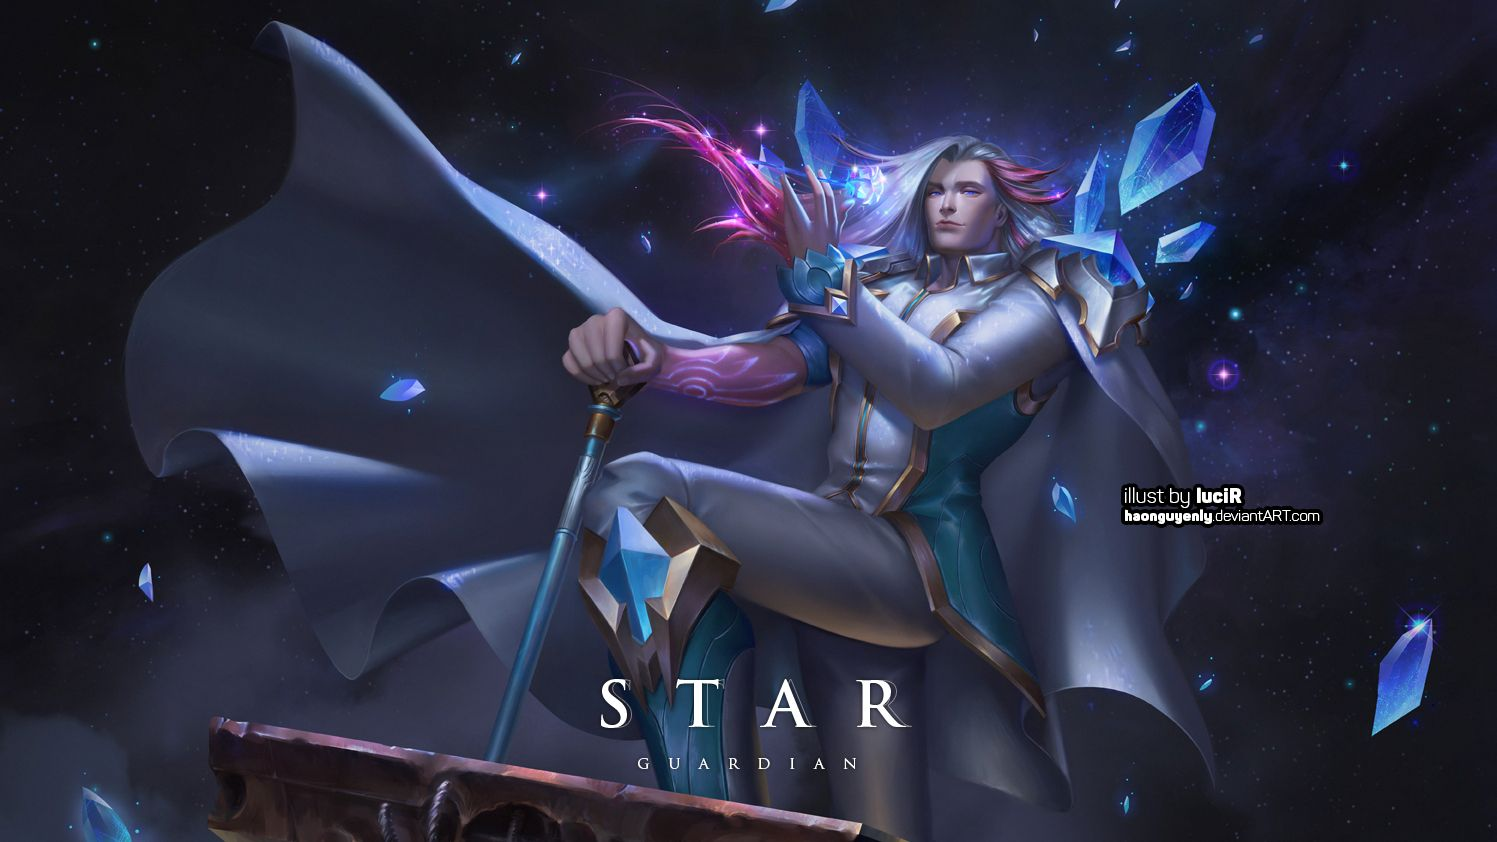 Star Guardian Taric Soo What You Think League Of Legends Memes Engracados Lol